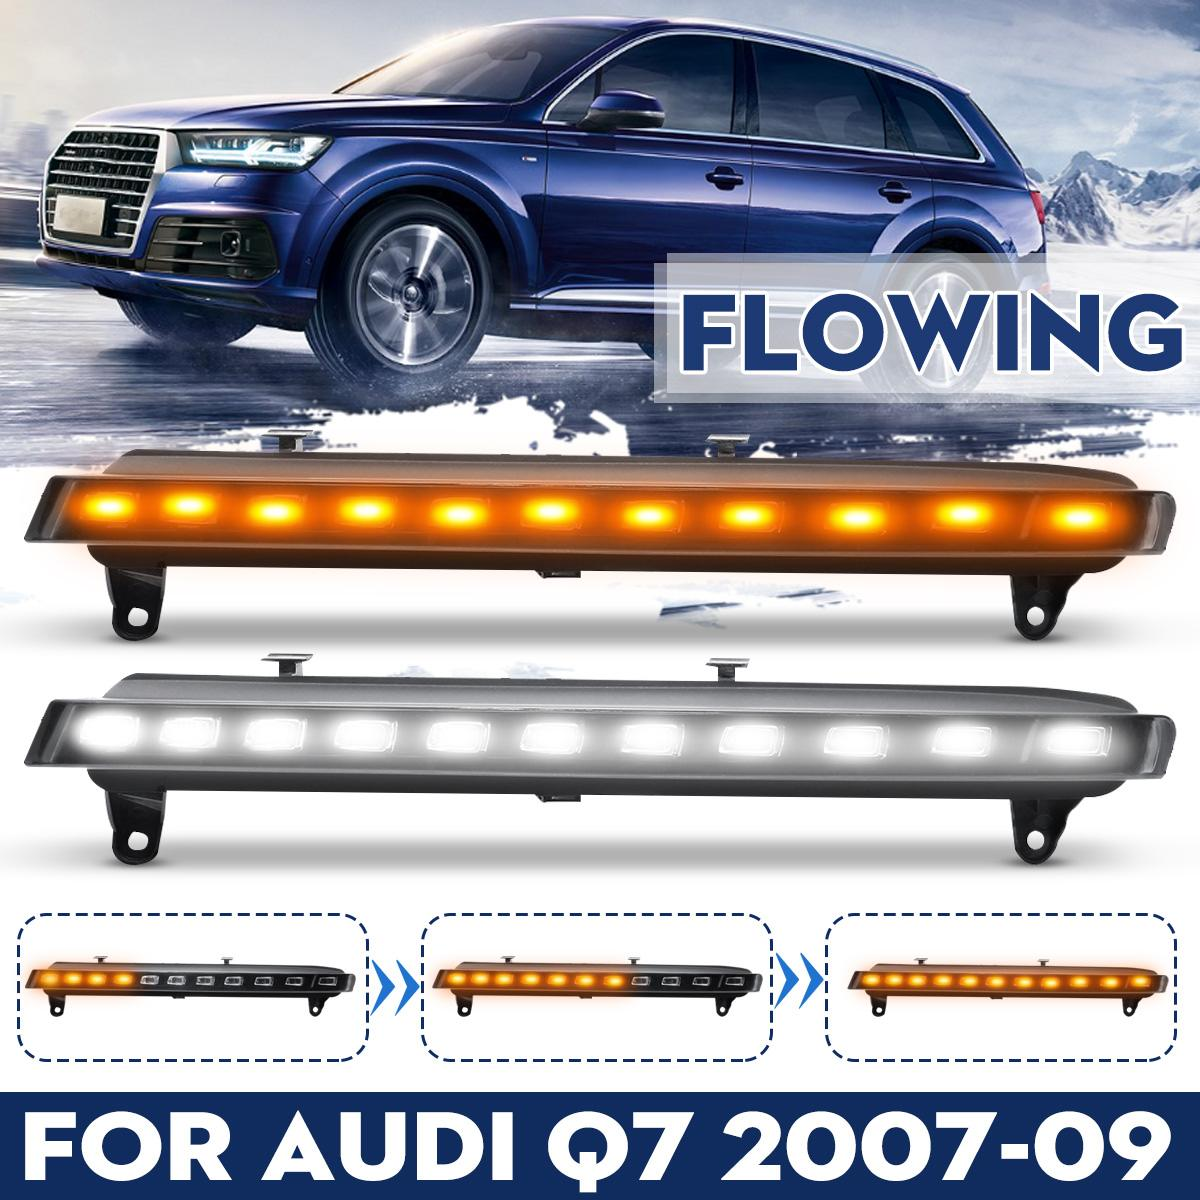 Pair For Audi Q7 2006 2007 2008 2009 Yellow Turn Signal Function Car DRL Waterproof 12V LED Daytime Running Light Fog Lamp BulbPair For Audi Q7 2006 2007 2008 2009 Yellow Turn Signal Function Car DRL Waterproof 12V LED Daytime Running Light Fog Lamp Bulb